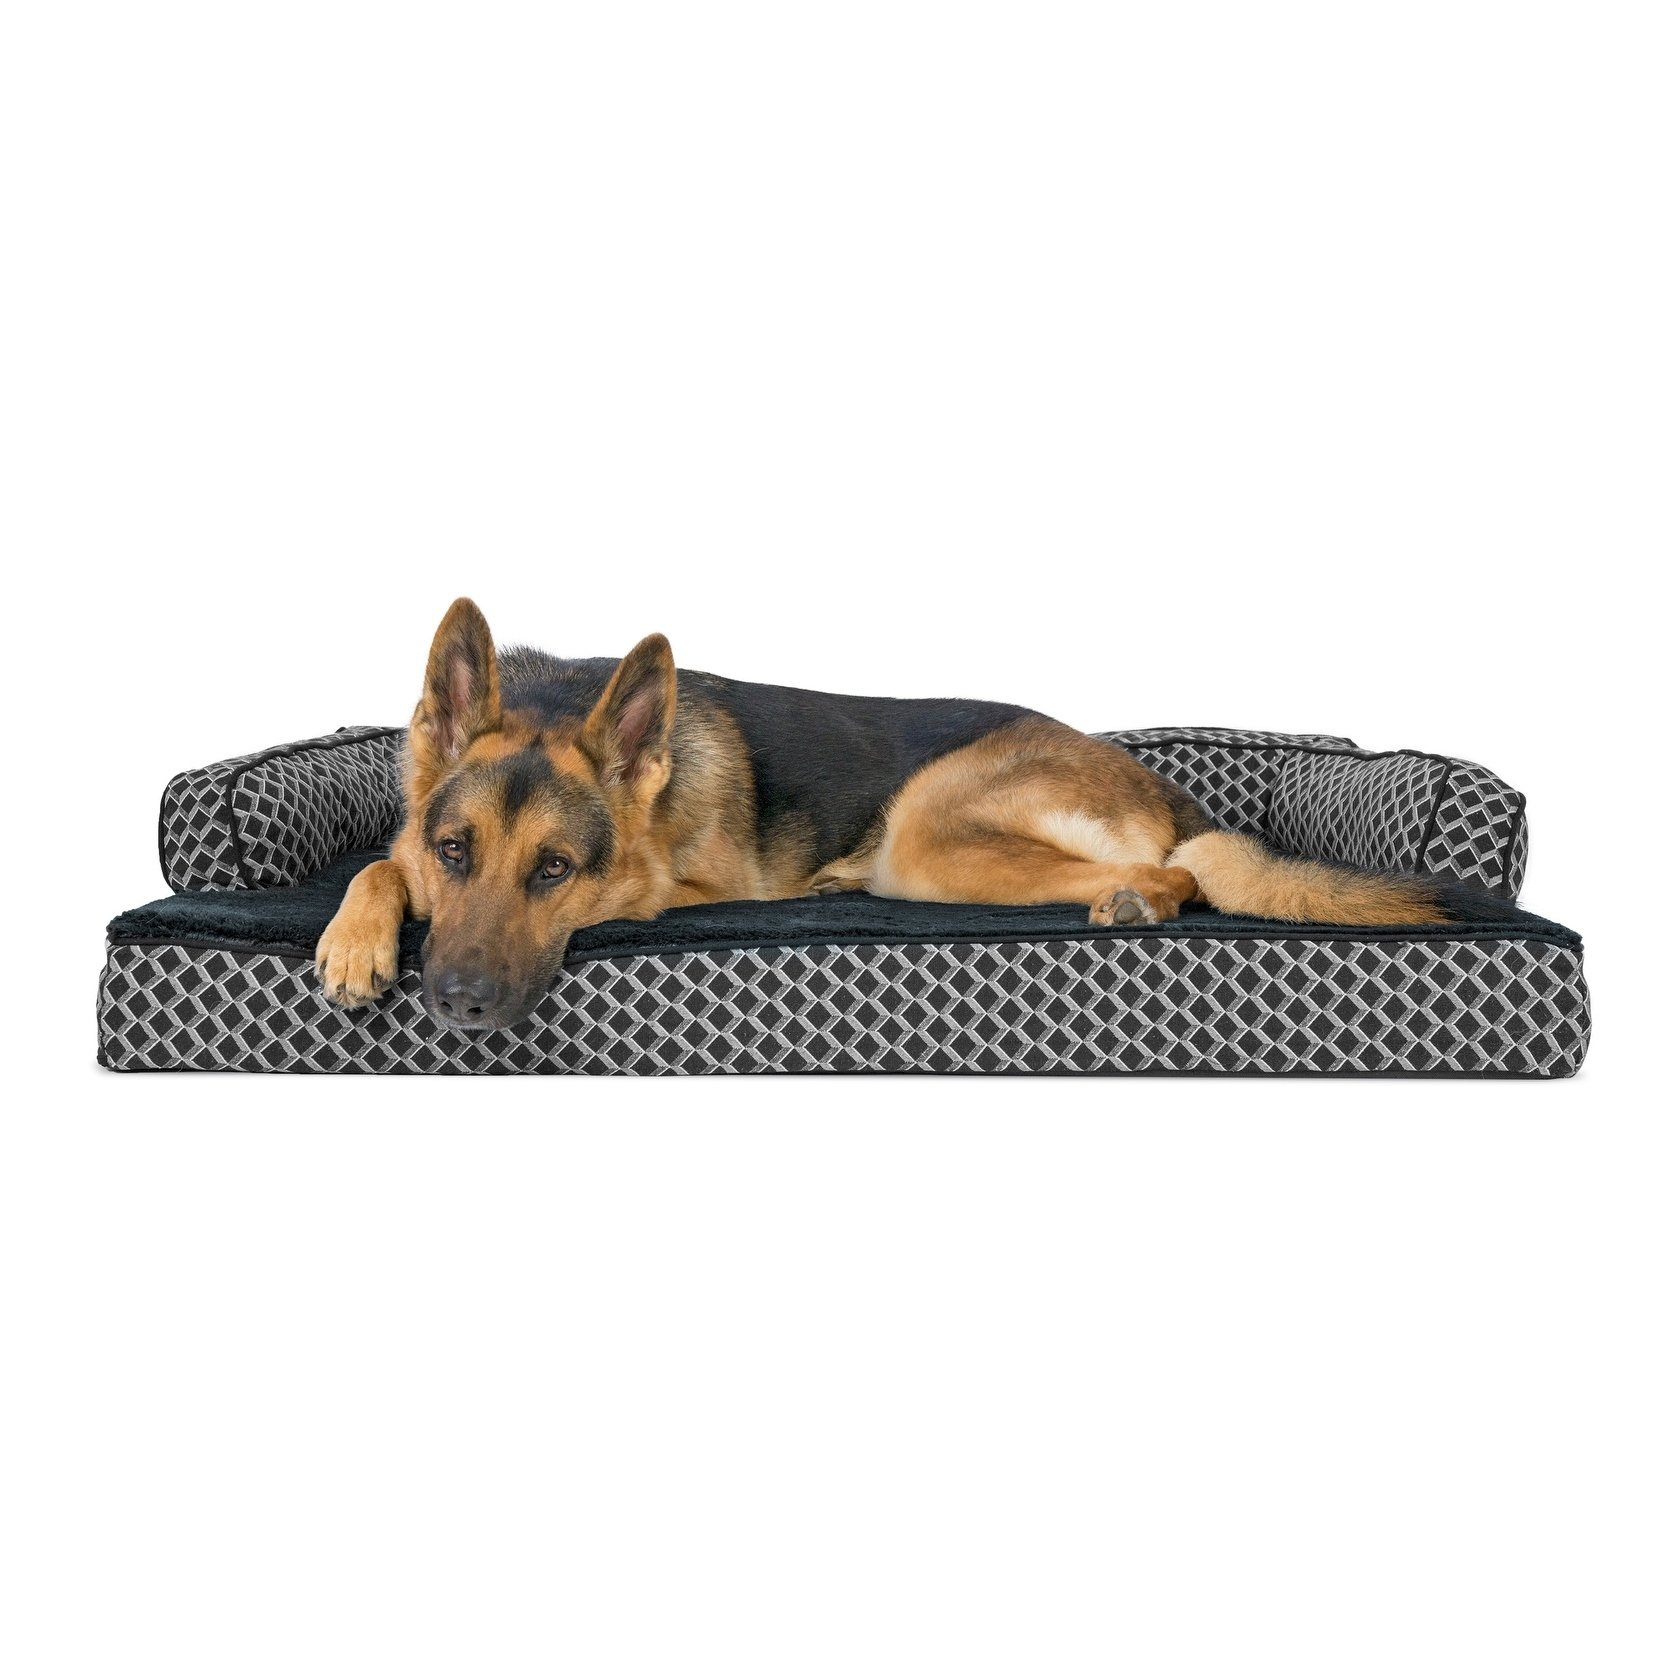 Furhaven Plush Decor Comfy Couch Orthopedic Sofa Style Pet Bed